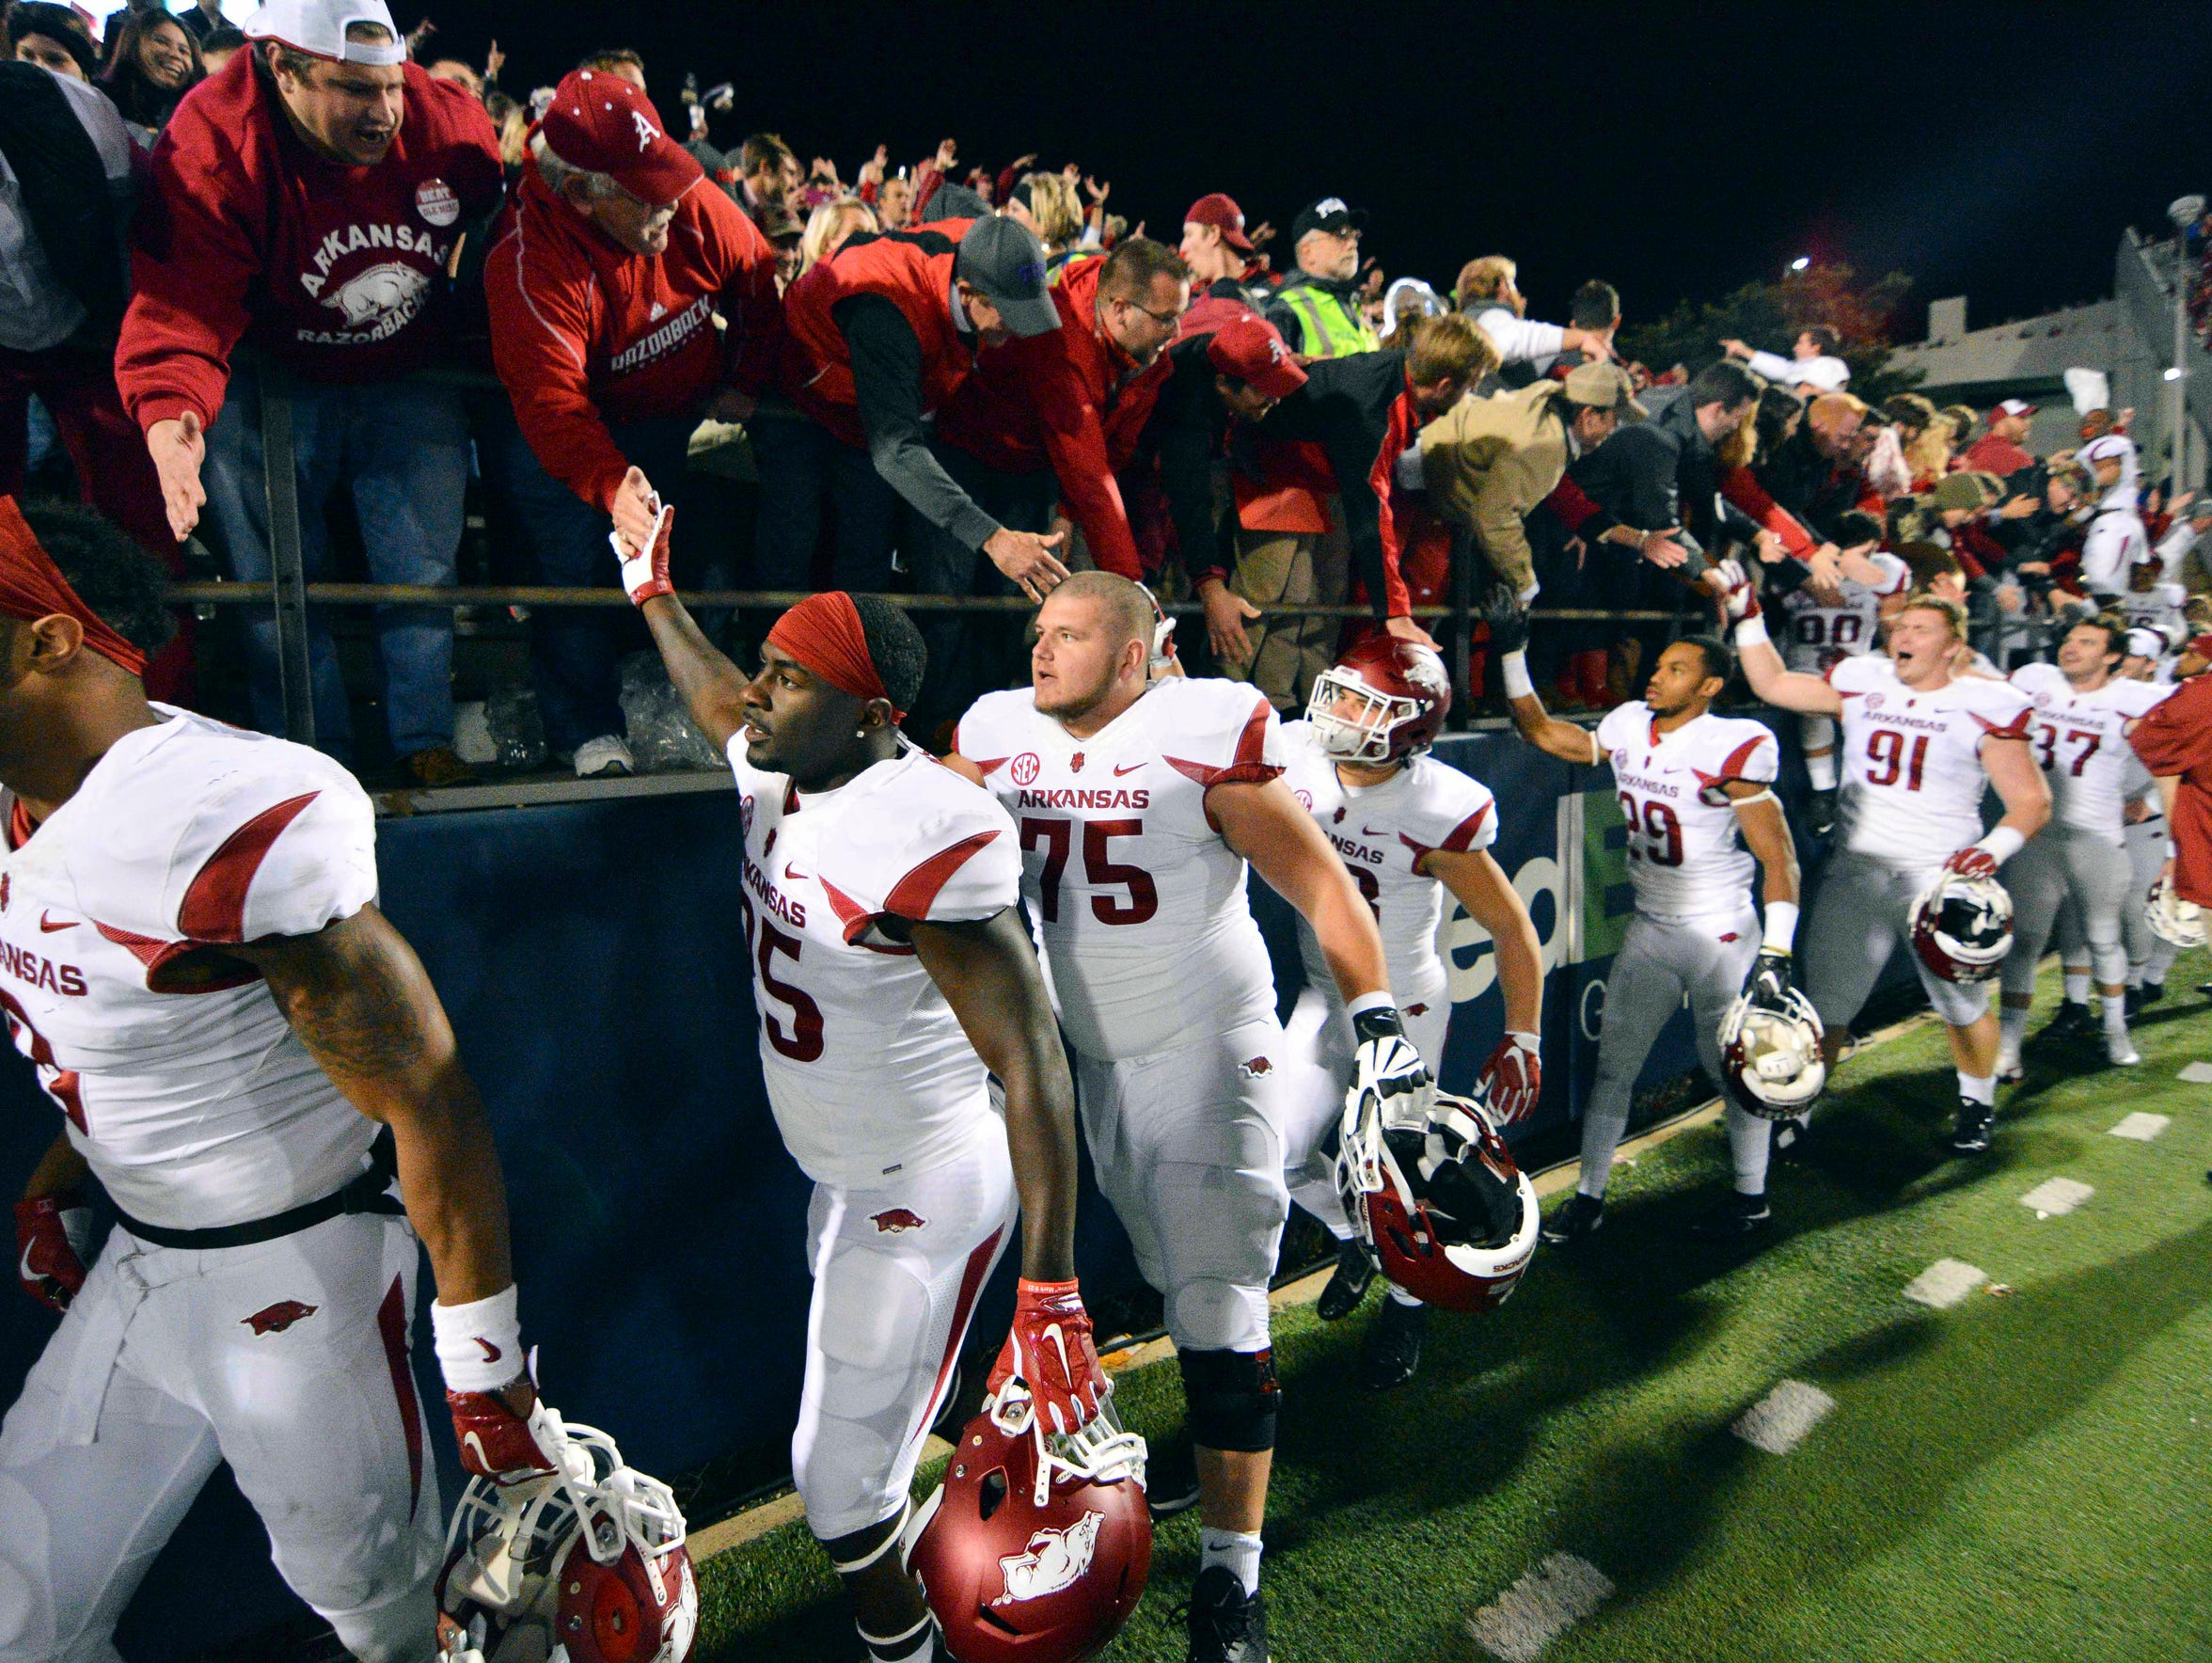 Arkansas Razorbacks players celebrate with fans after